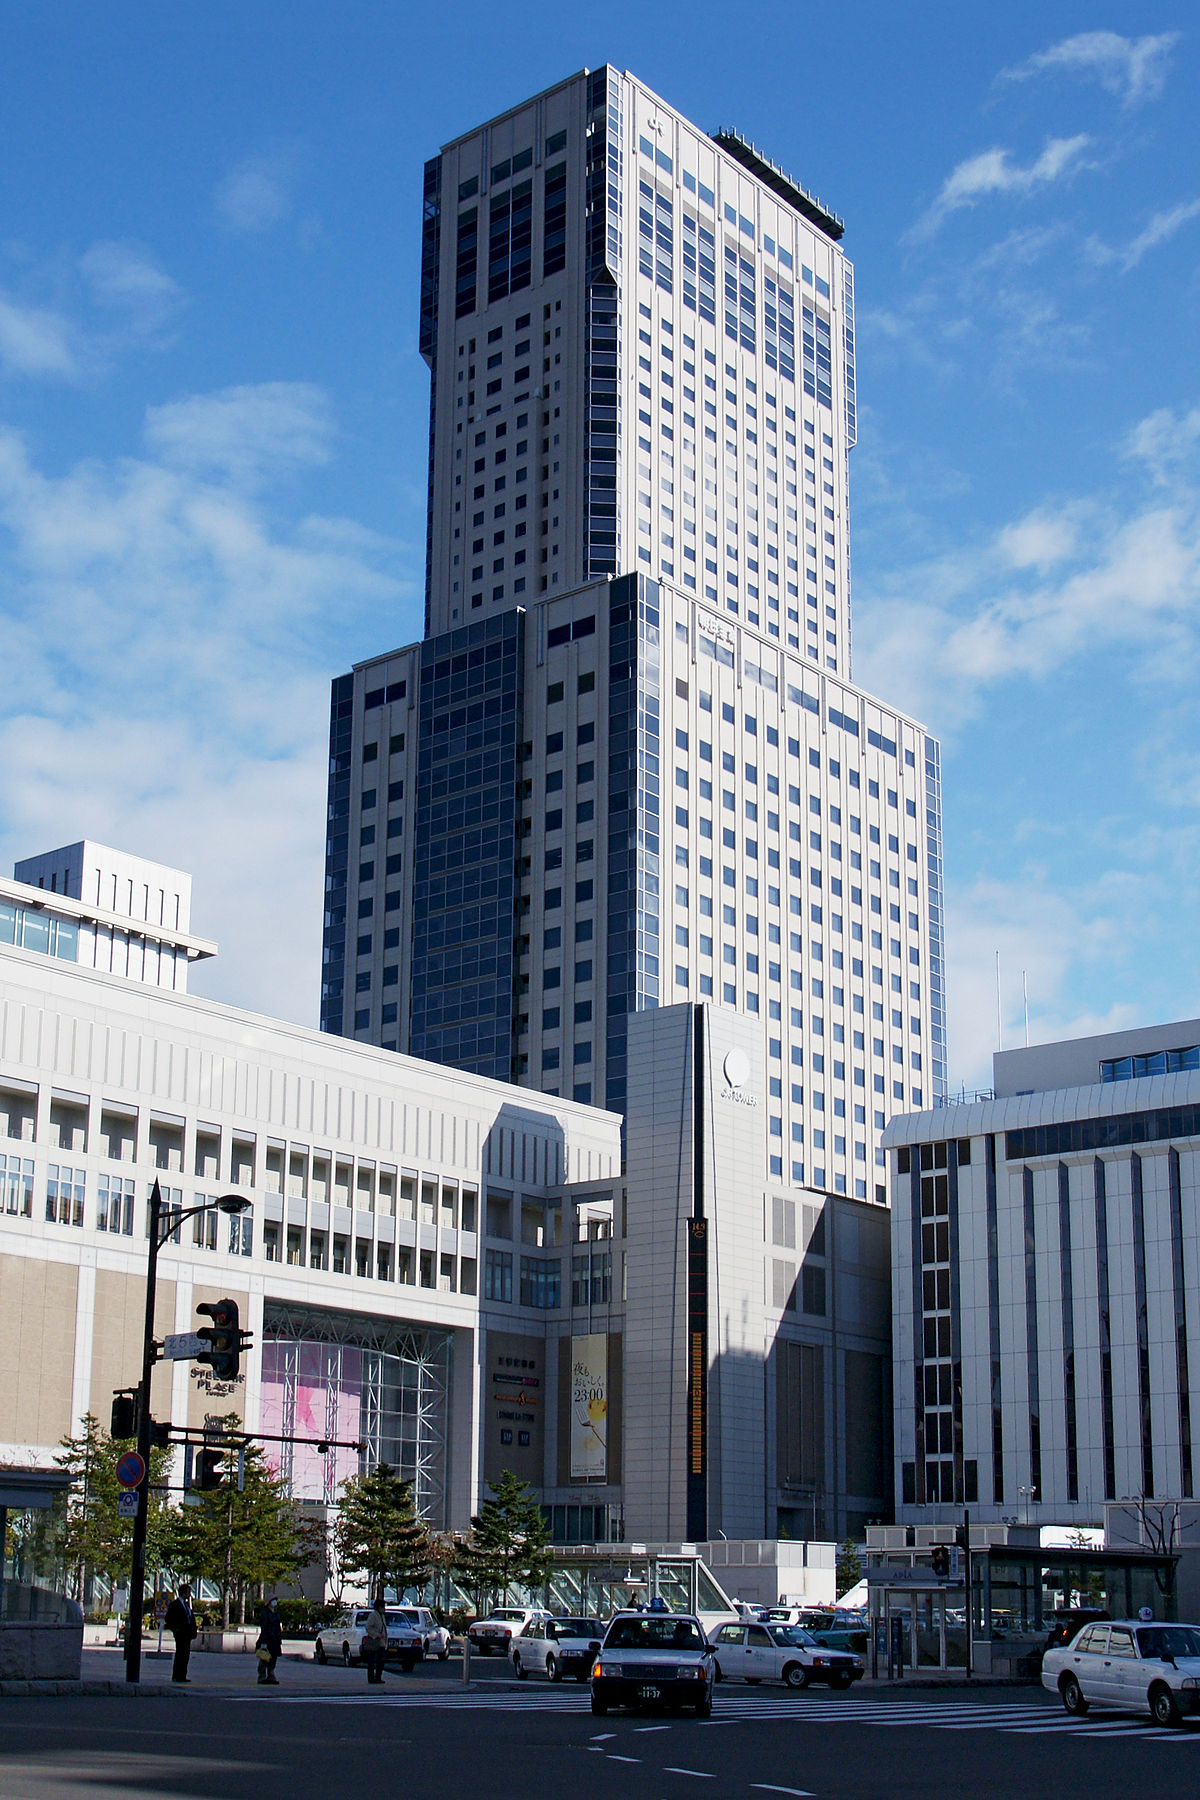 Sapporo Travel Guide At Wikivoyage